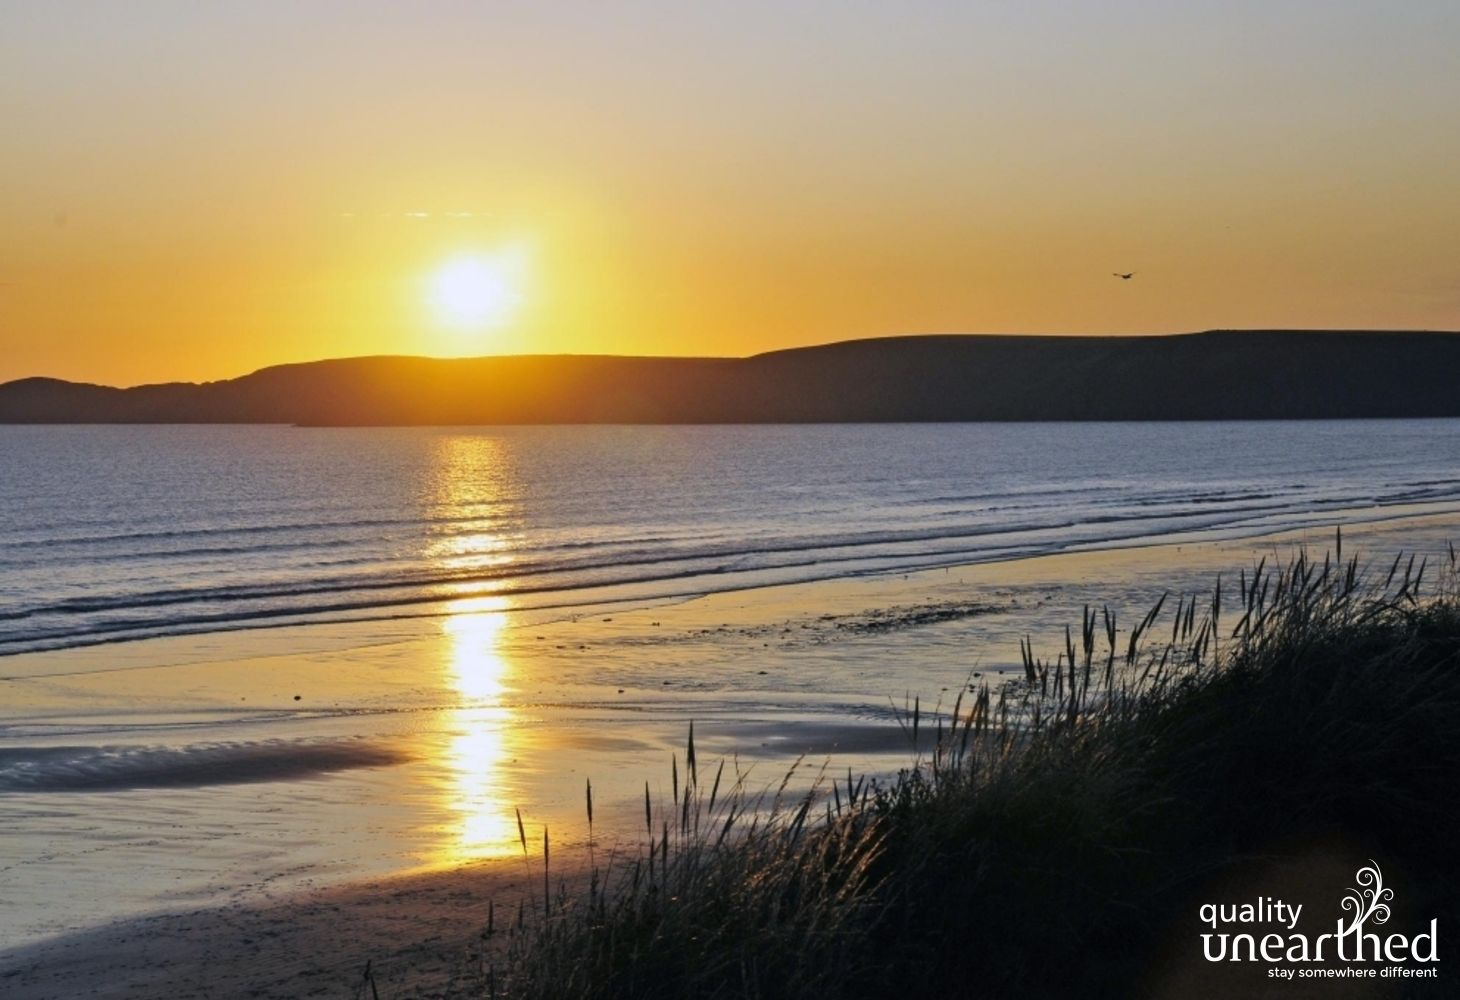 A stunning sunset over Newgale beach